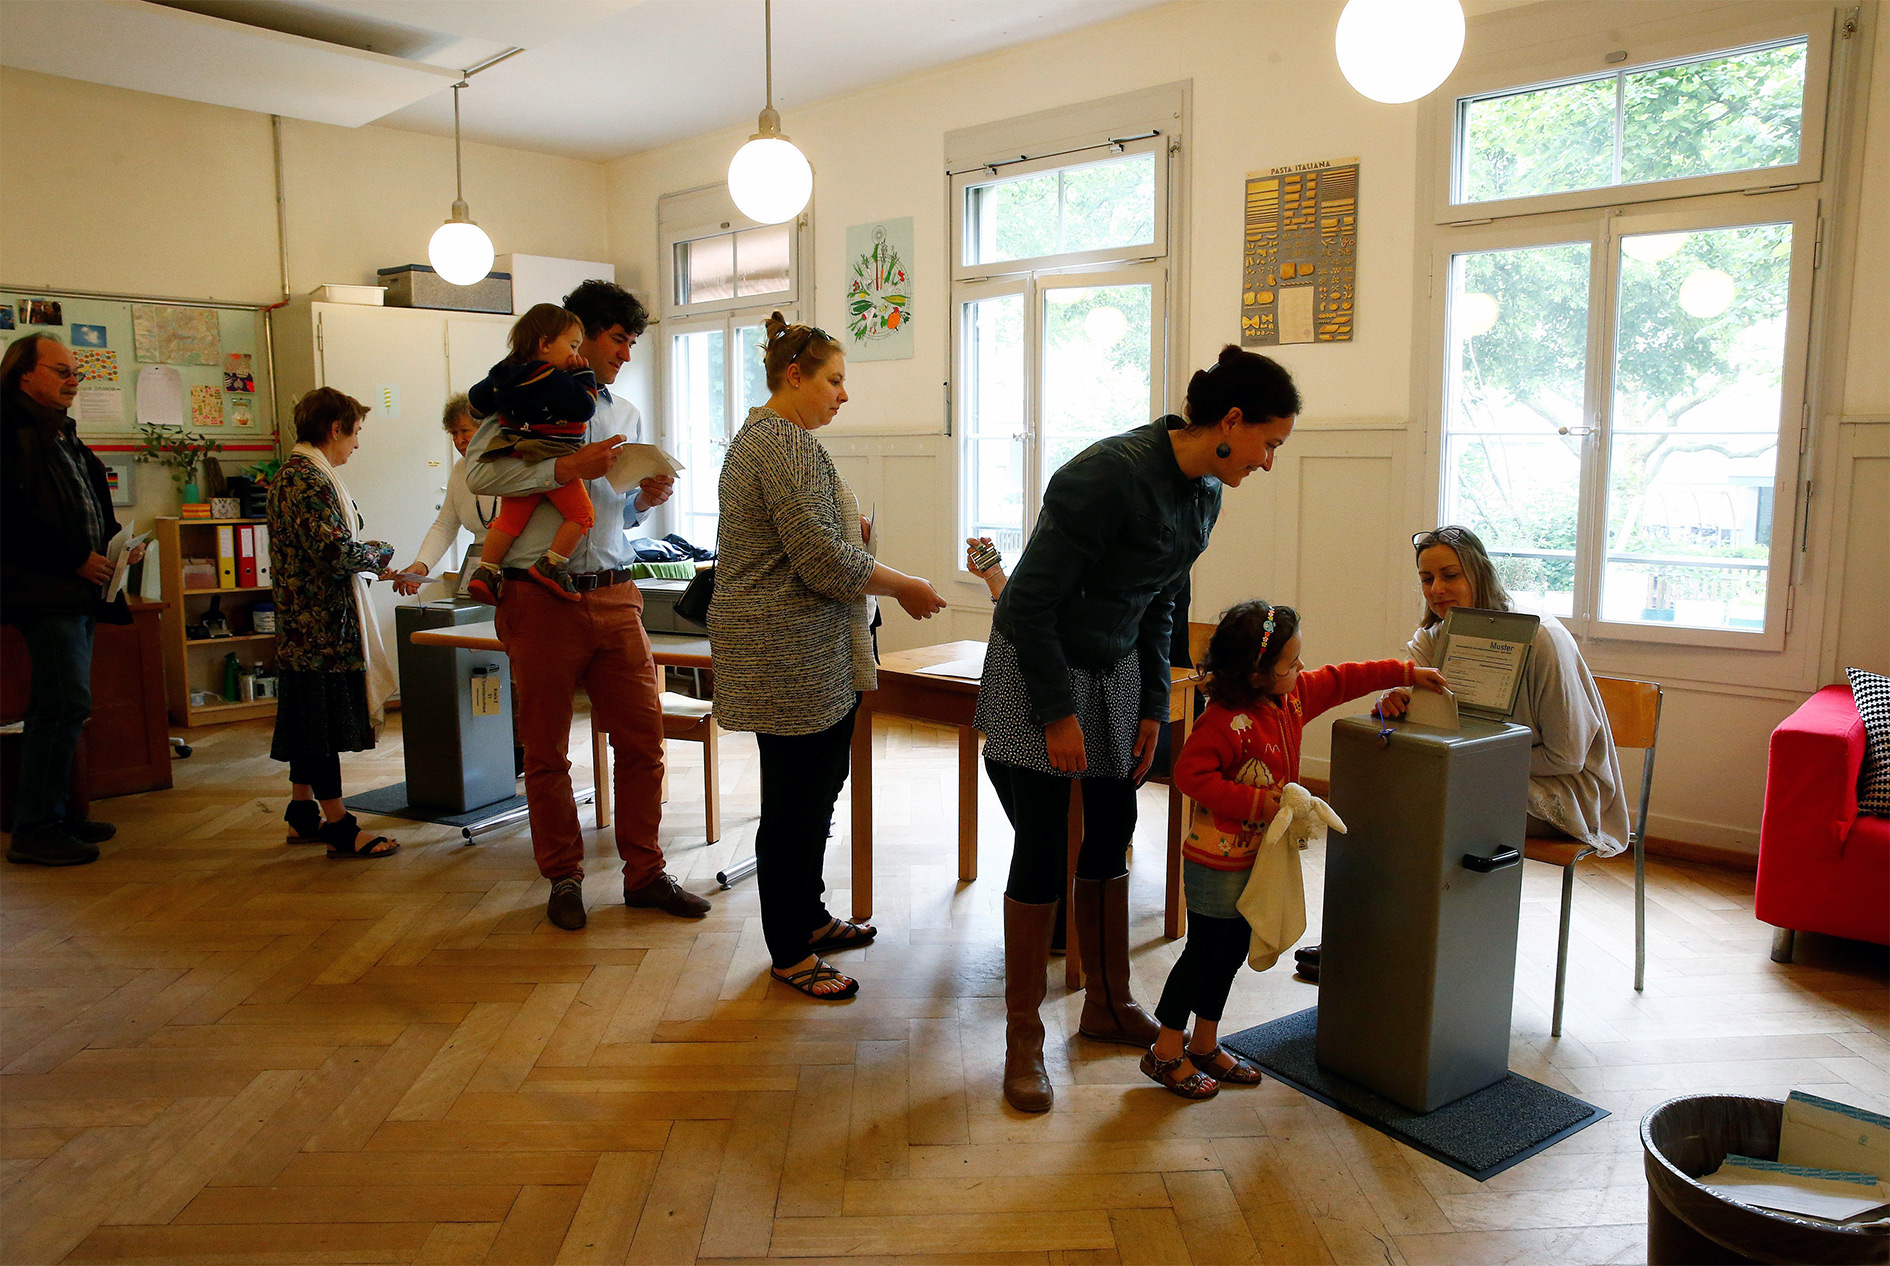 People cast their ballots during a vote on whether to give every adult citizen a basic guaranteed monthly income of 2,500 Swiss francs ($2,560), in a school in Bern, Switzerland, June 5, 2016.